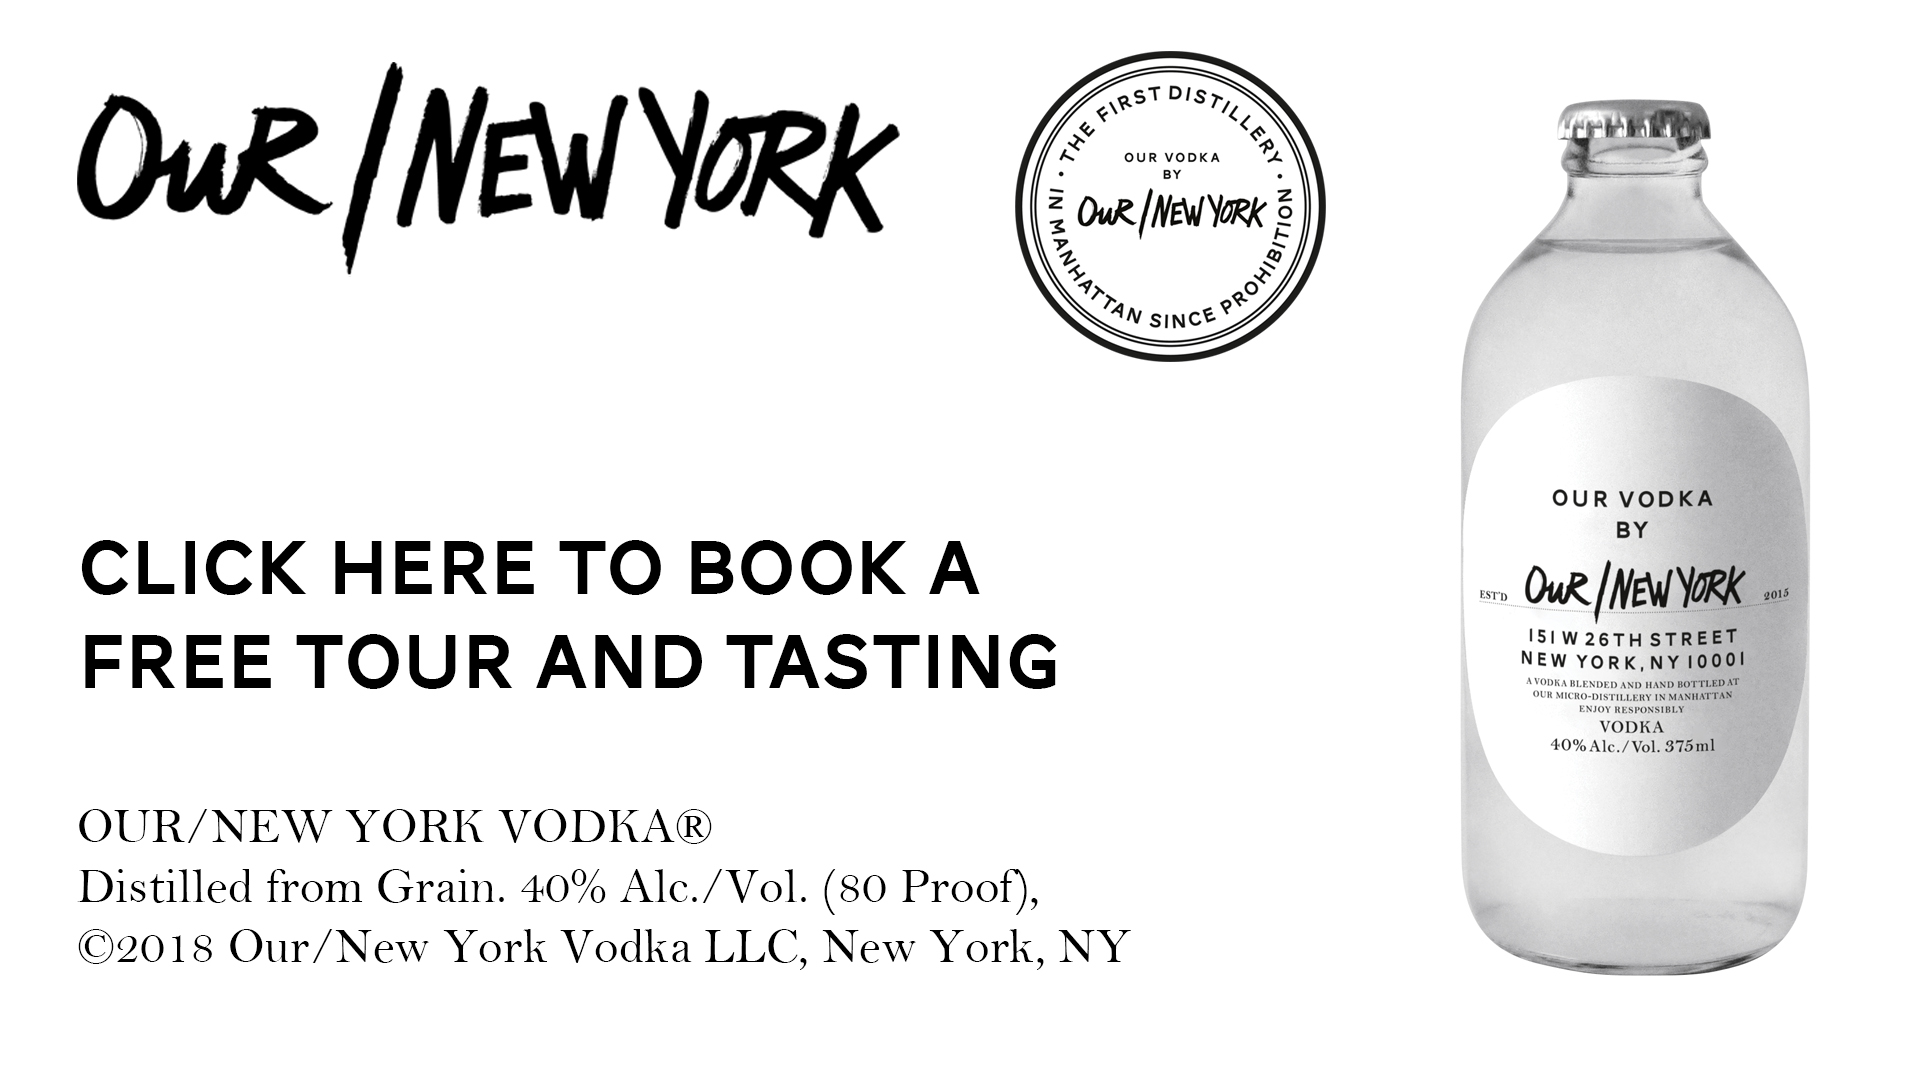 Book a free tour and tasting